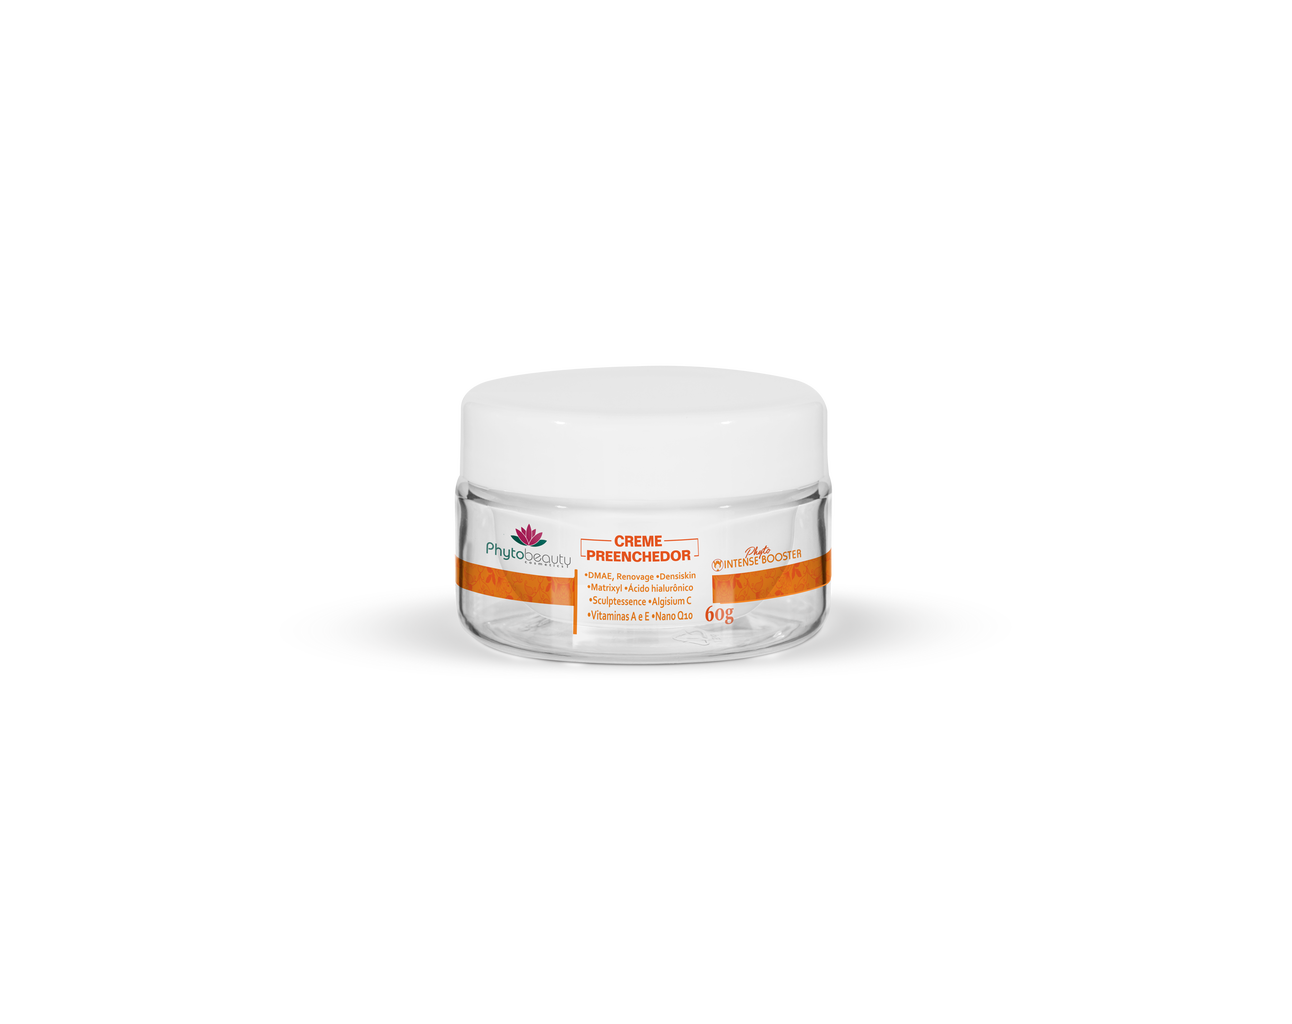 CREME PREENCHEDOR PHYTO  INTENSE BOOSTER - 60G